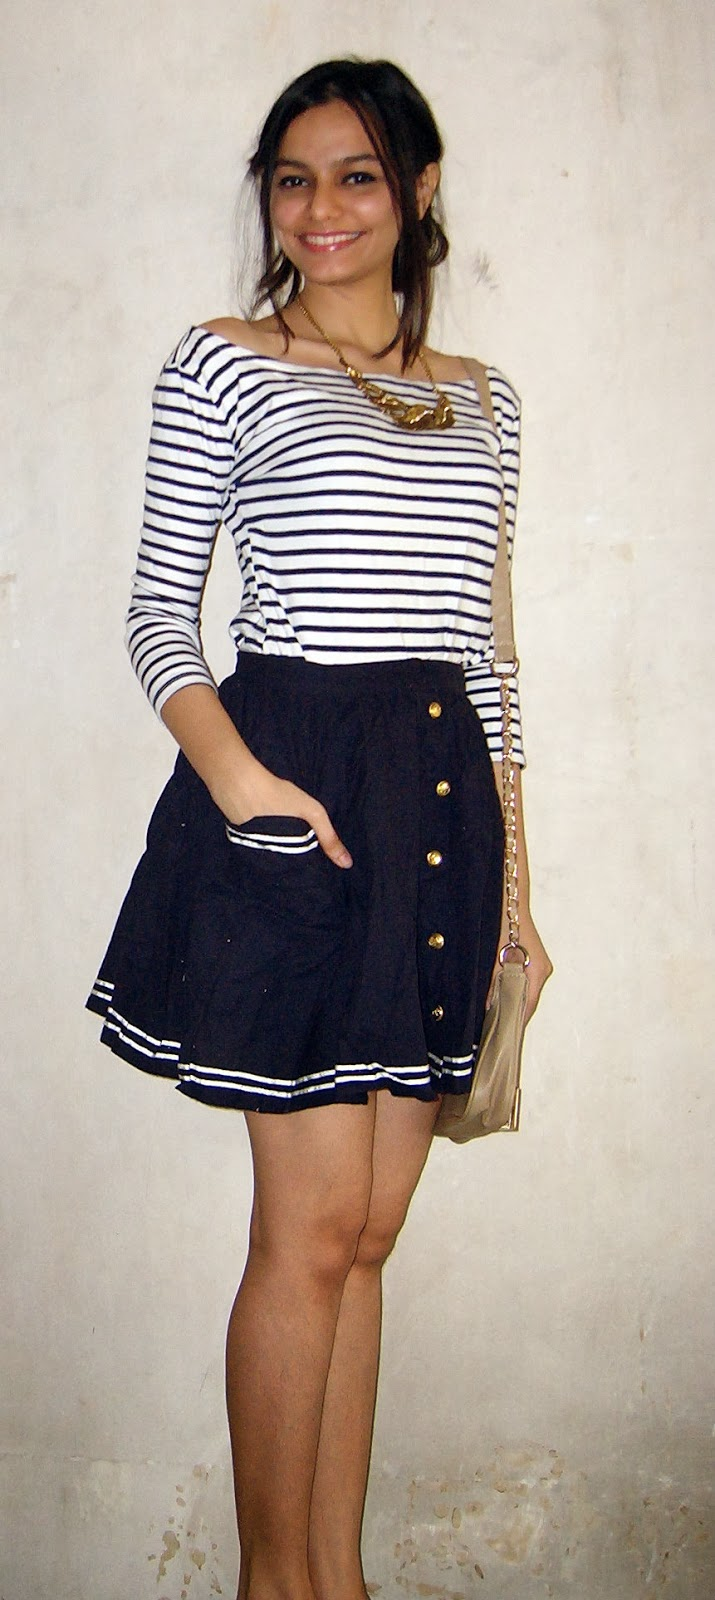 nautical, spring look, summer look in india, street shopping in bandra, fashion street shopping